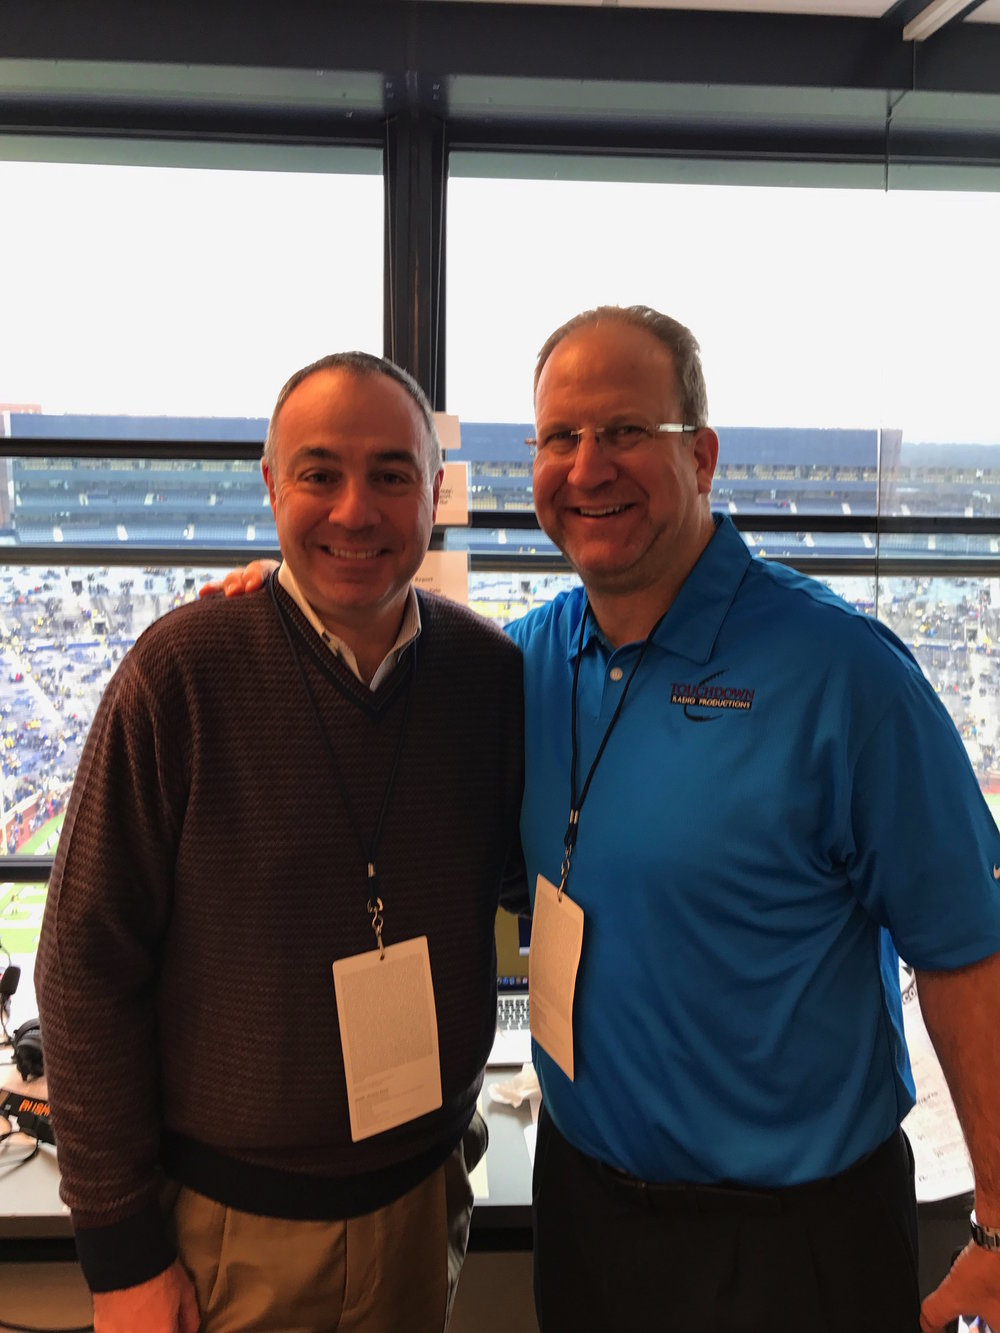 With my analyst Gino Torretta before our national broadcast of the Indiana-Michigan game in 2016.